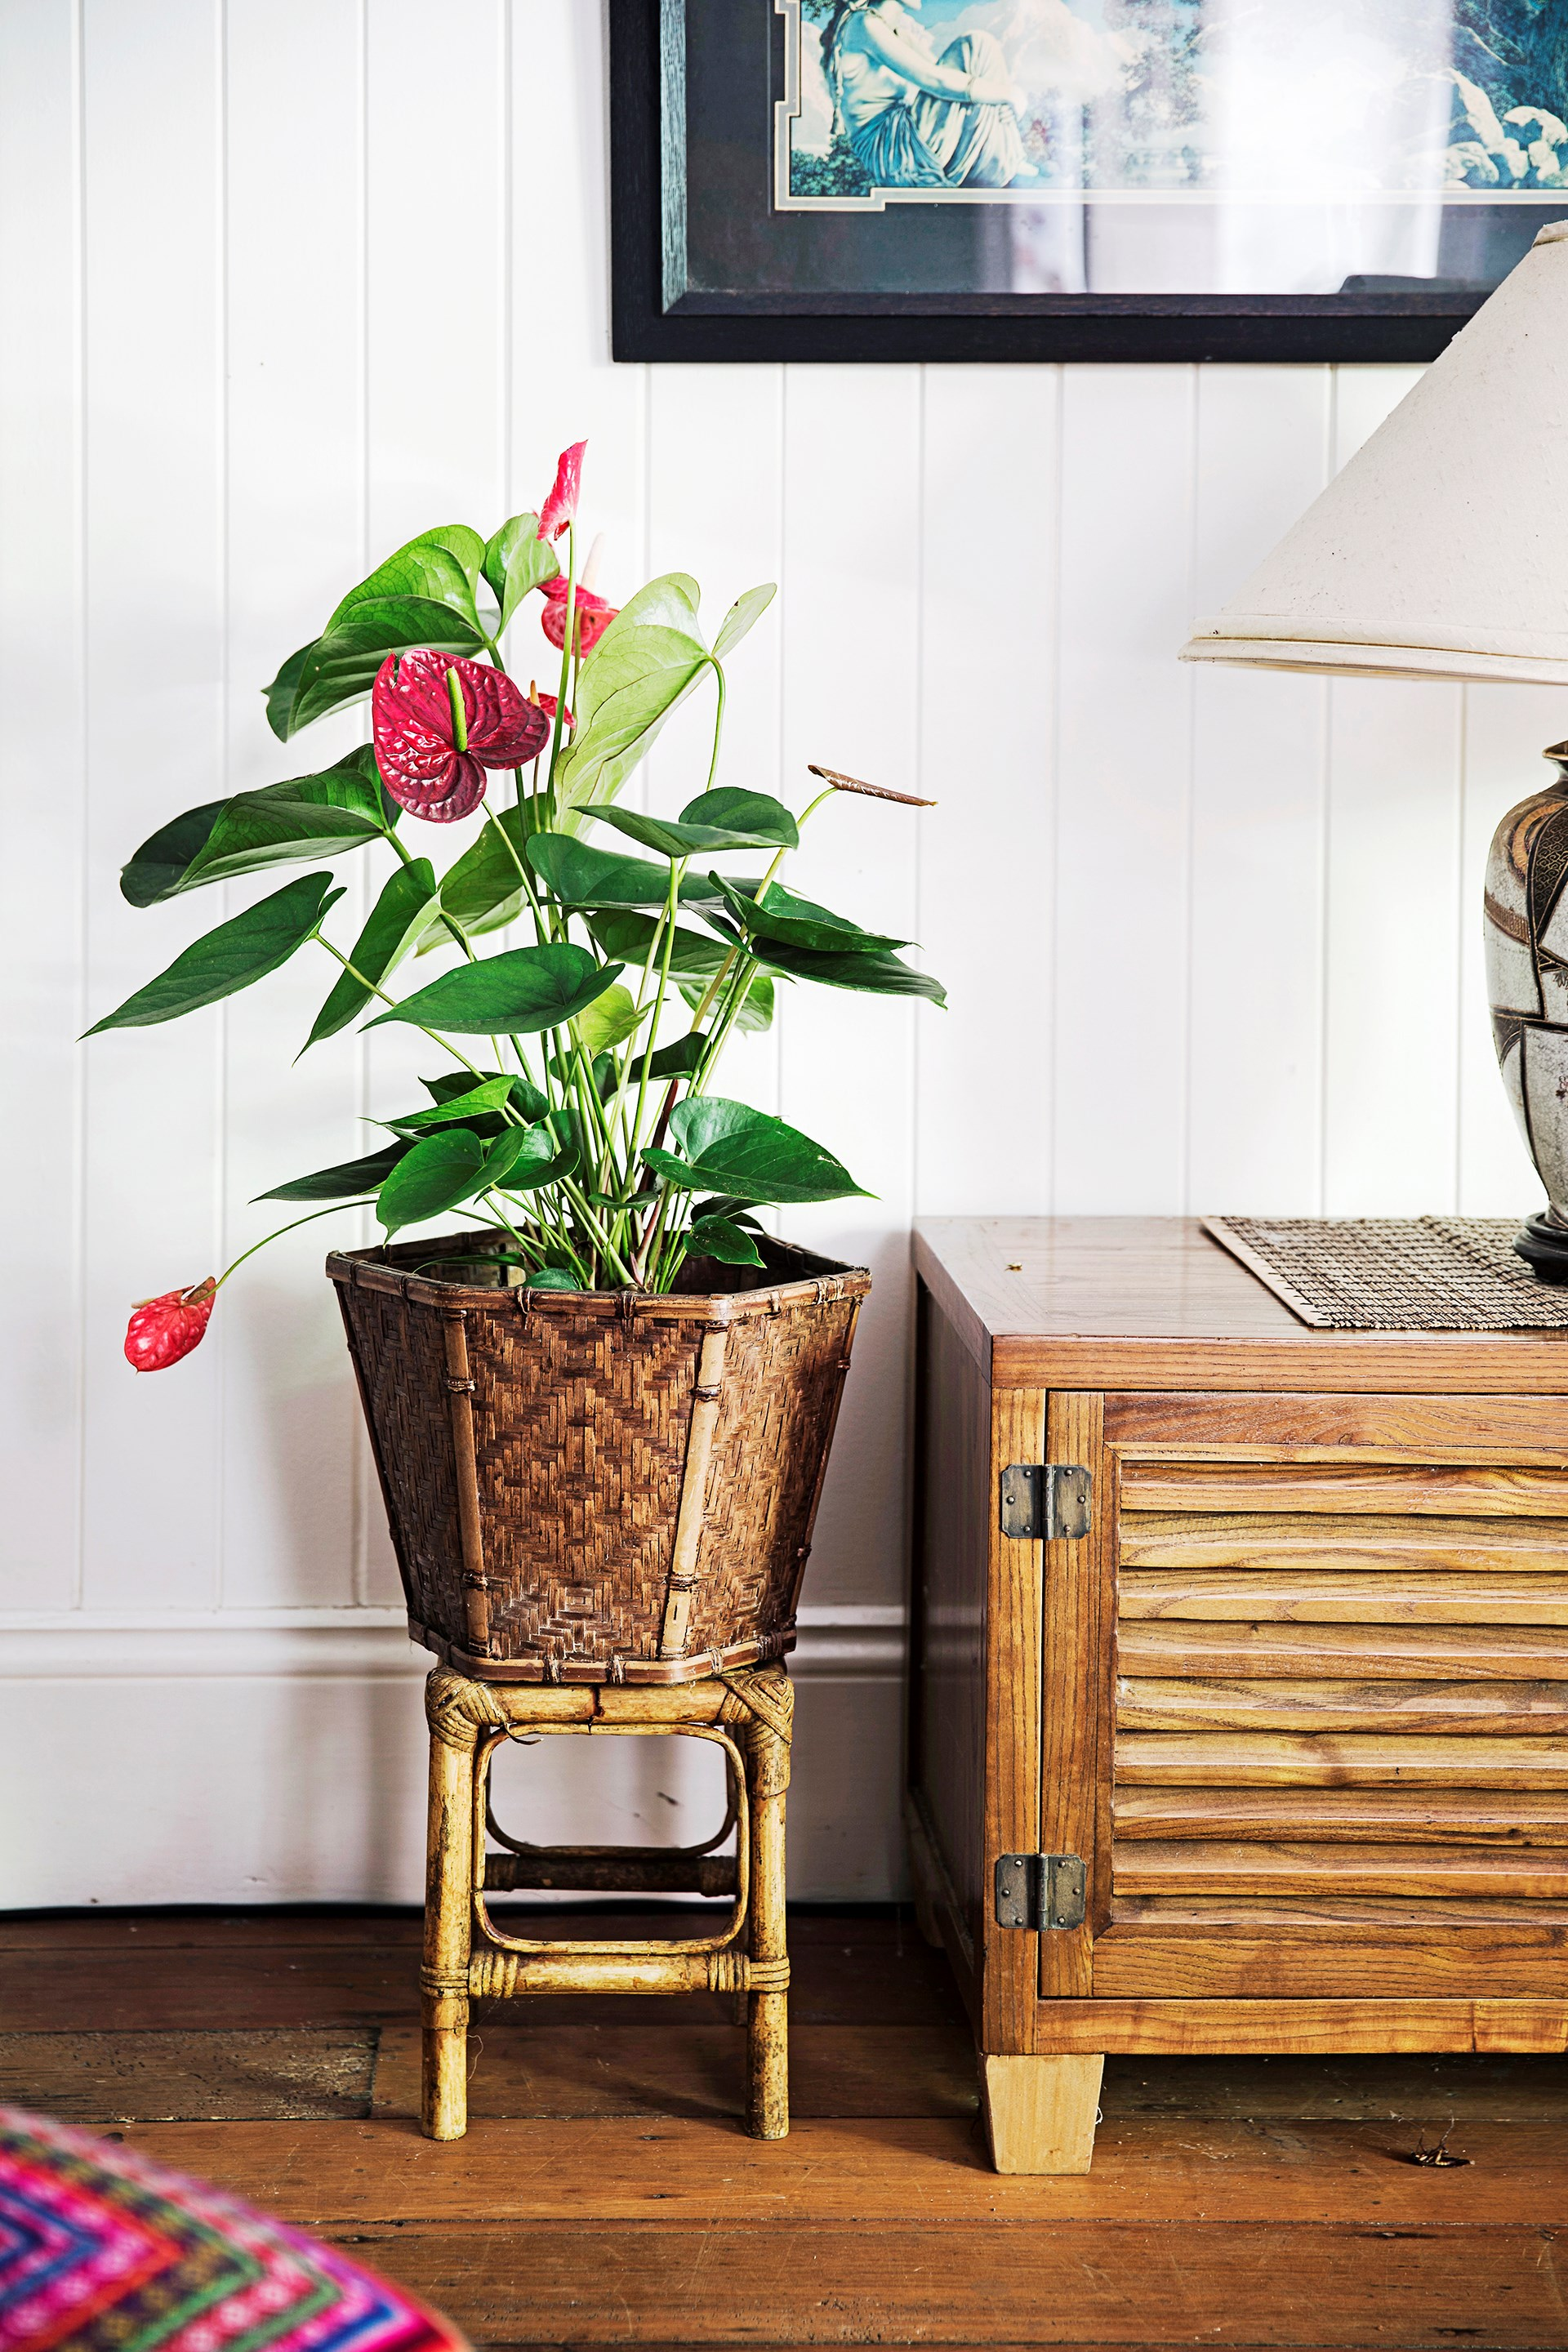 **Planters -** Indoor plants displayed in wicker plant stands or woven baskets give off a retro-boho vibe in this [holiday-inspired Queenslander home](http://www.homestolove.com.au/old-is-new-again-in-this-revamped-queenslander-3532).